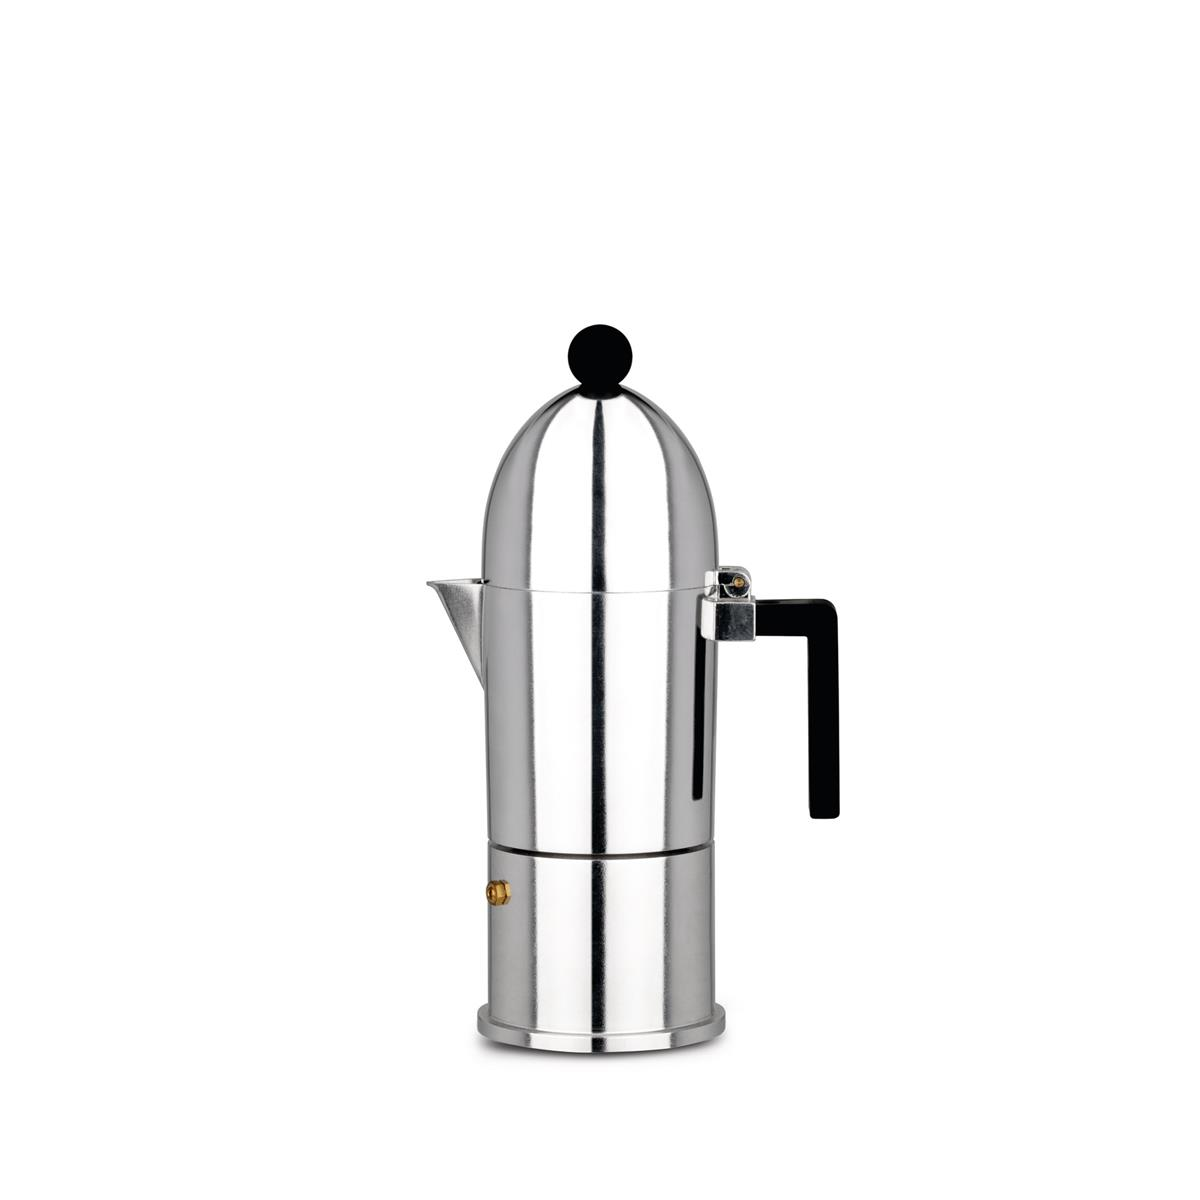 Alessi-La cupola Espresso coffee maker in cast aluminum, black 6 cups